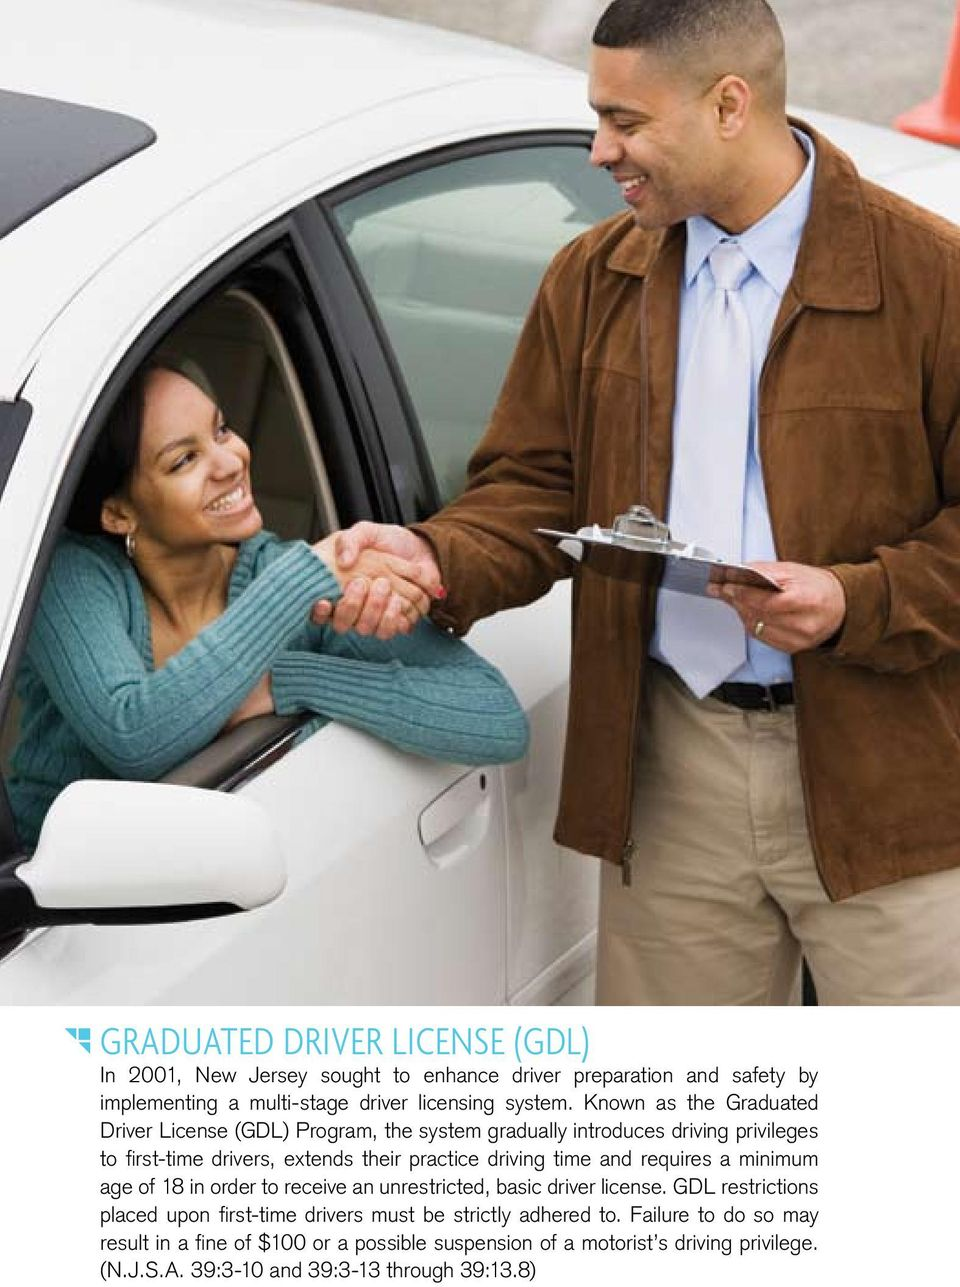 time and requires a minimum age of 18 in order to receive an unrestricted, basic driver license.